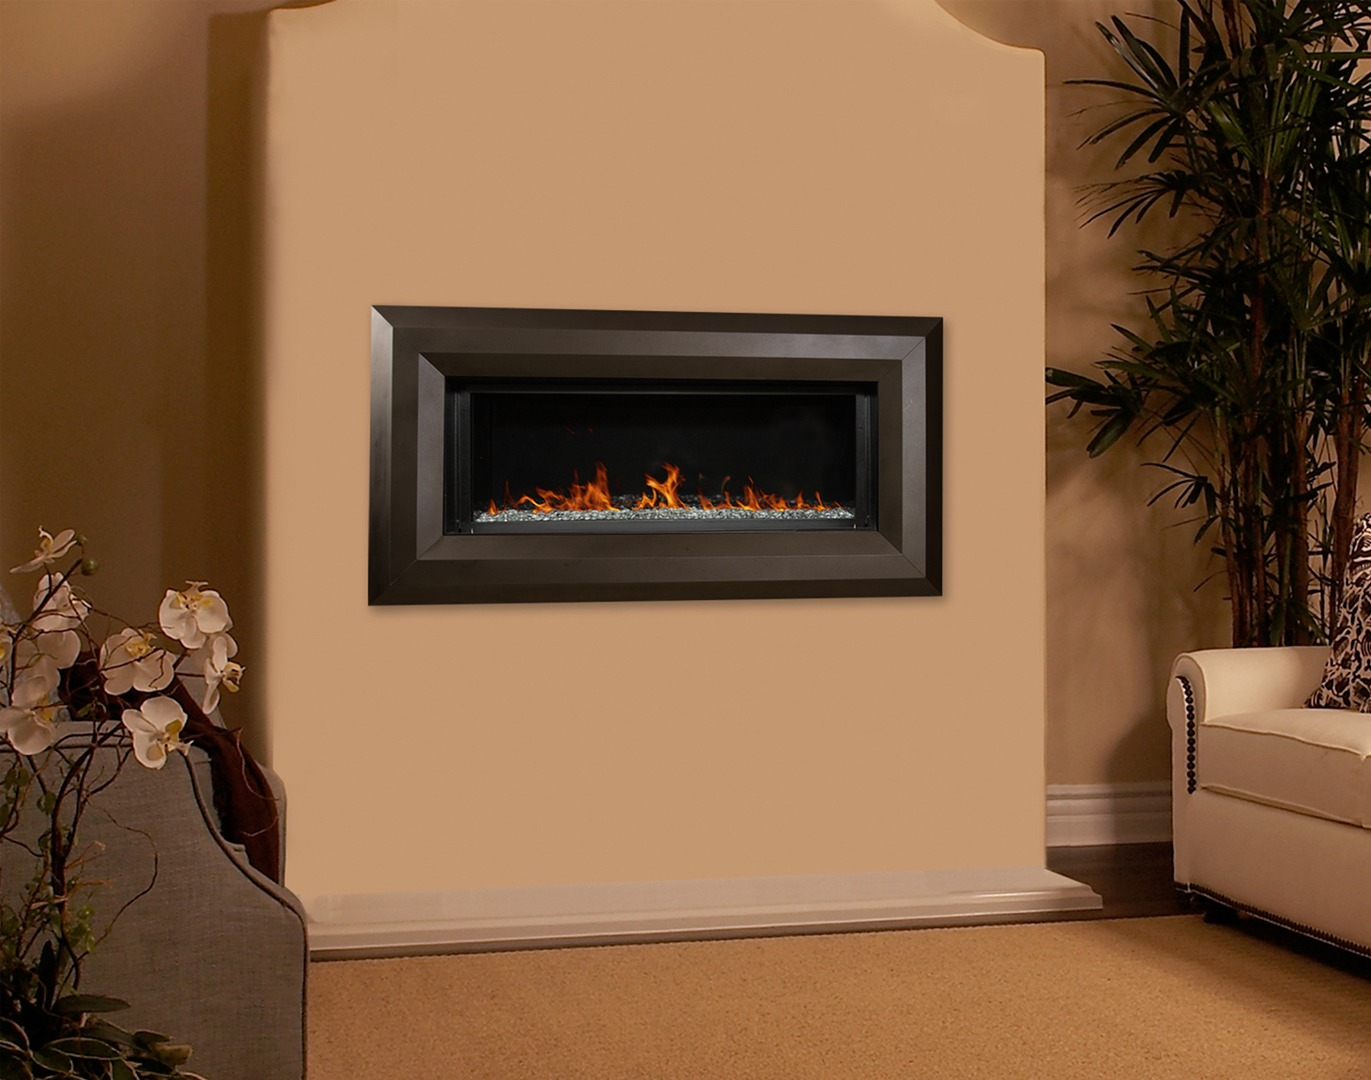 First Inch Free Standing Fireplace Insert Electric Fireplace Wall Mounted Electric Fireplace